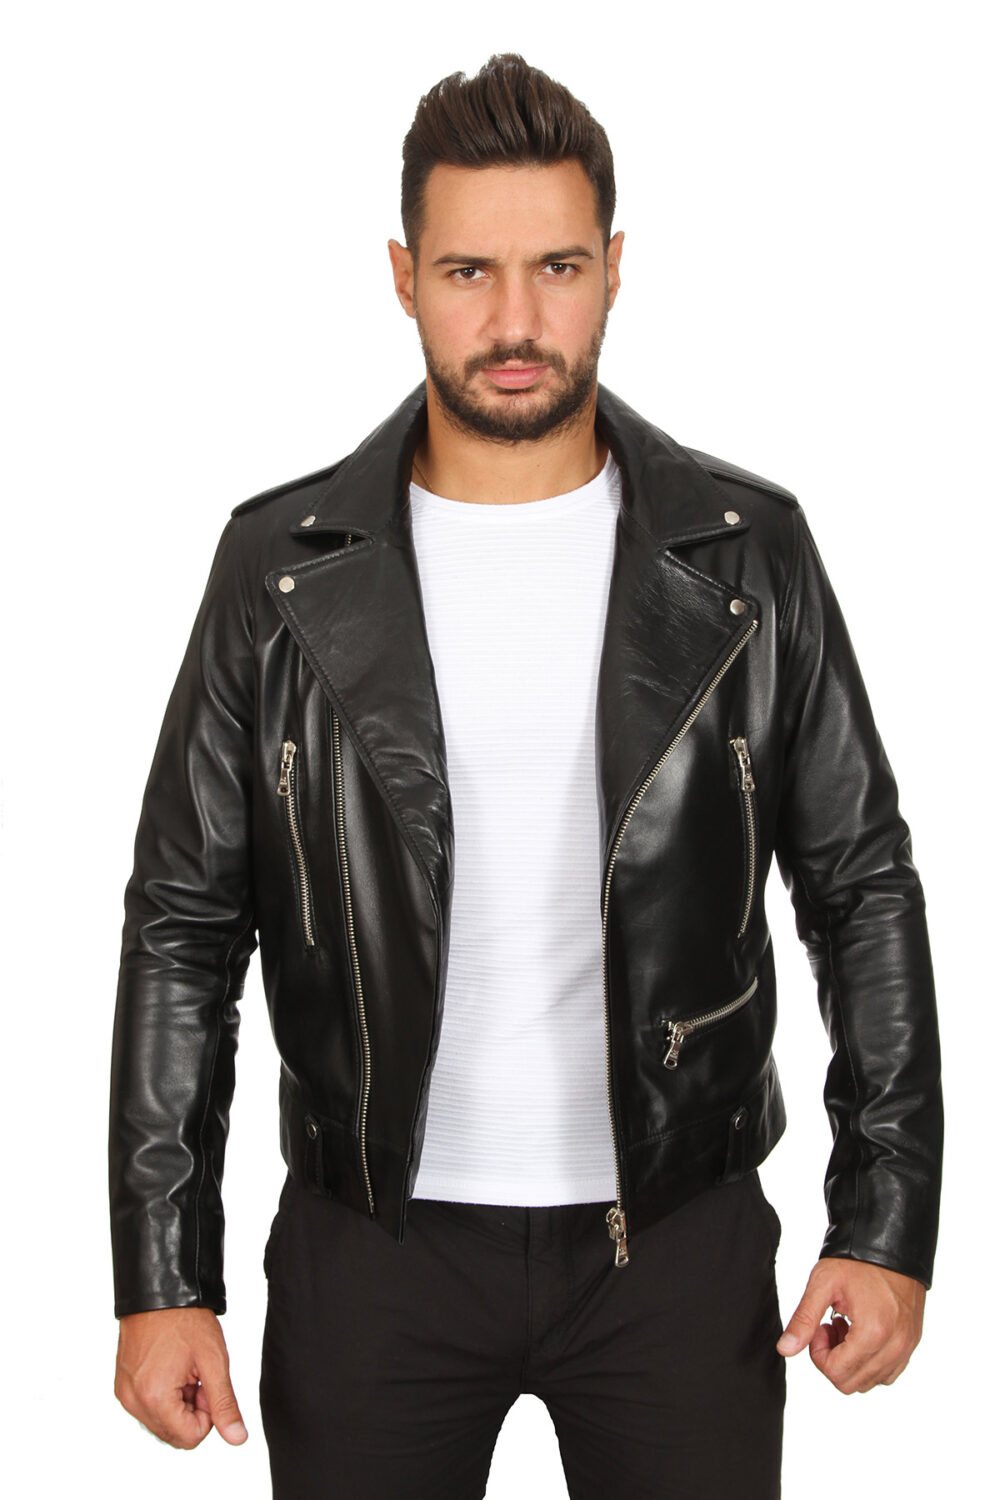 Where To Buy A Leather Jacket